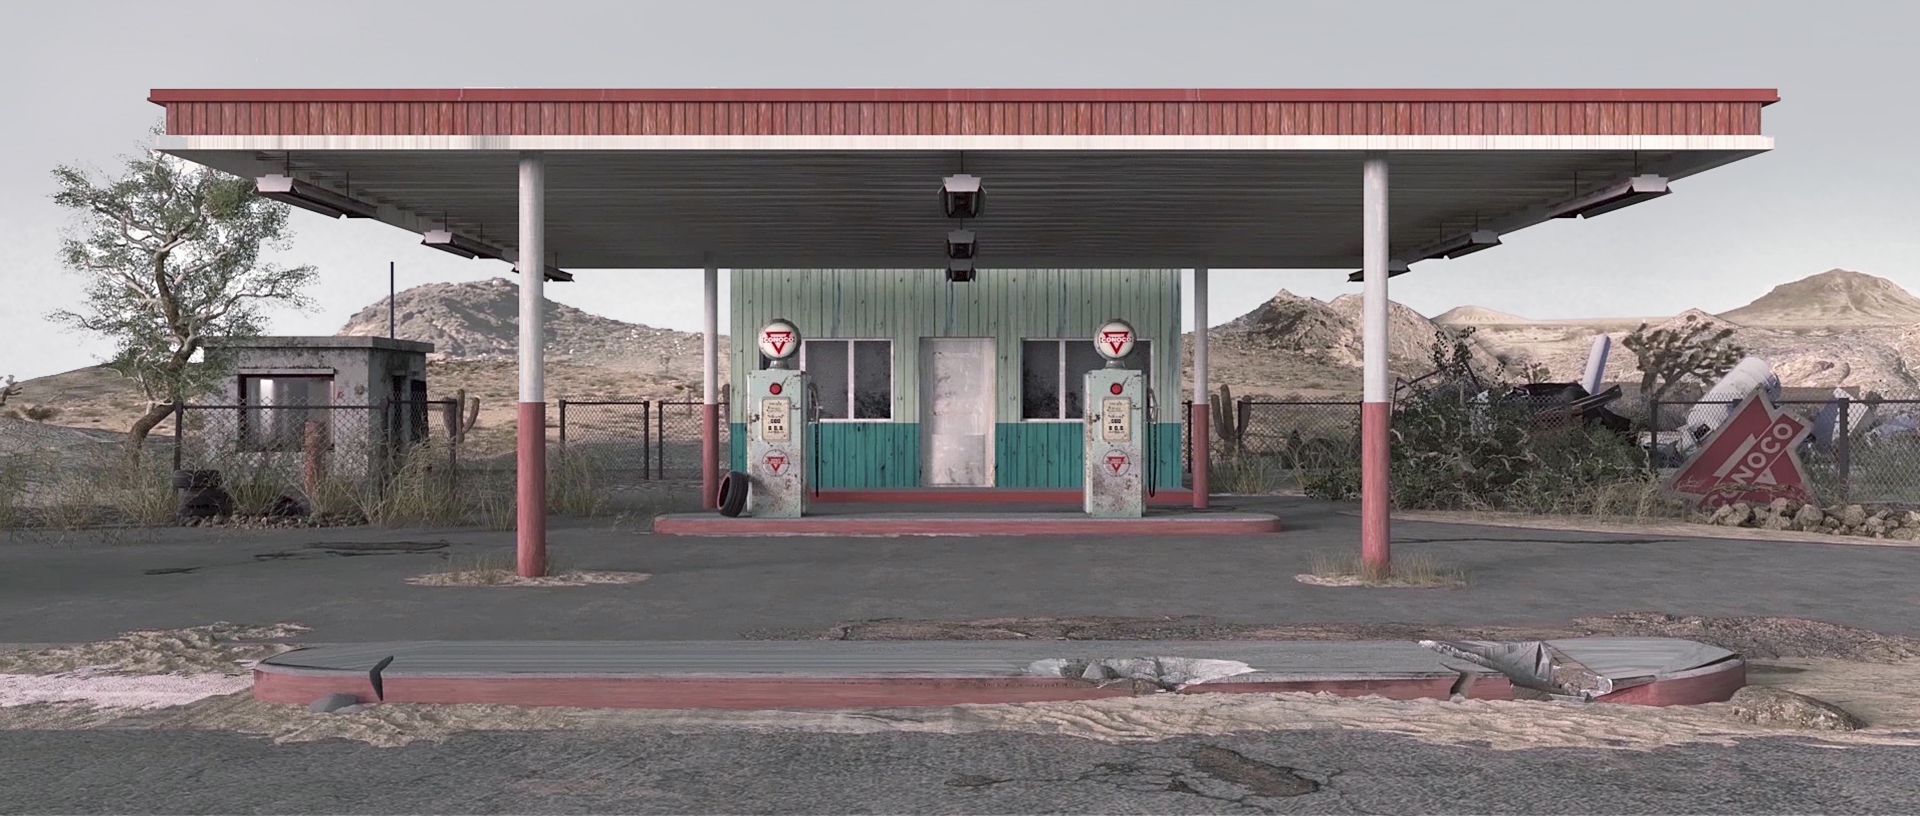 Conoco Gas Station